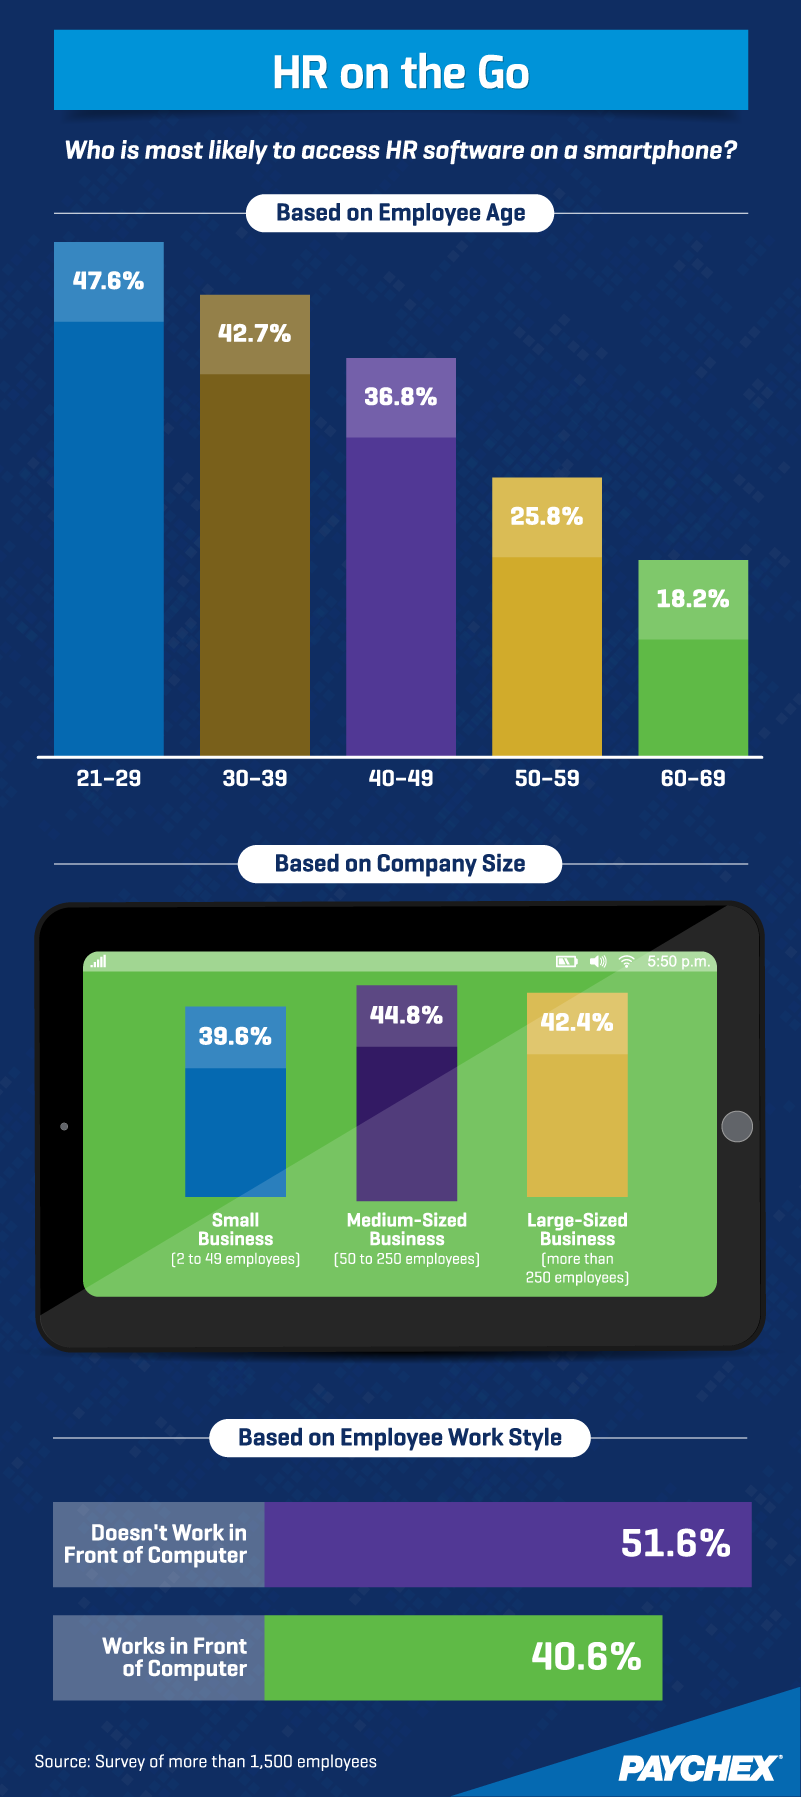 HR on the Go: Who is most likely to access HR software on a smartphone?